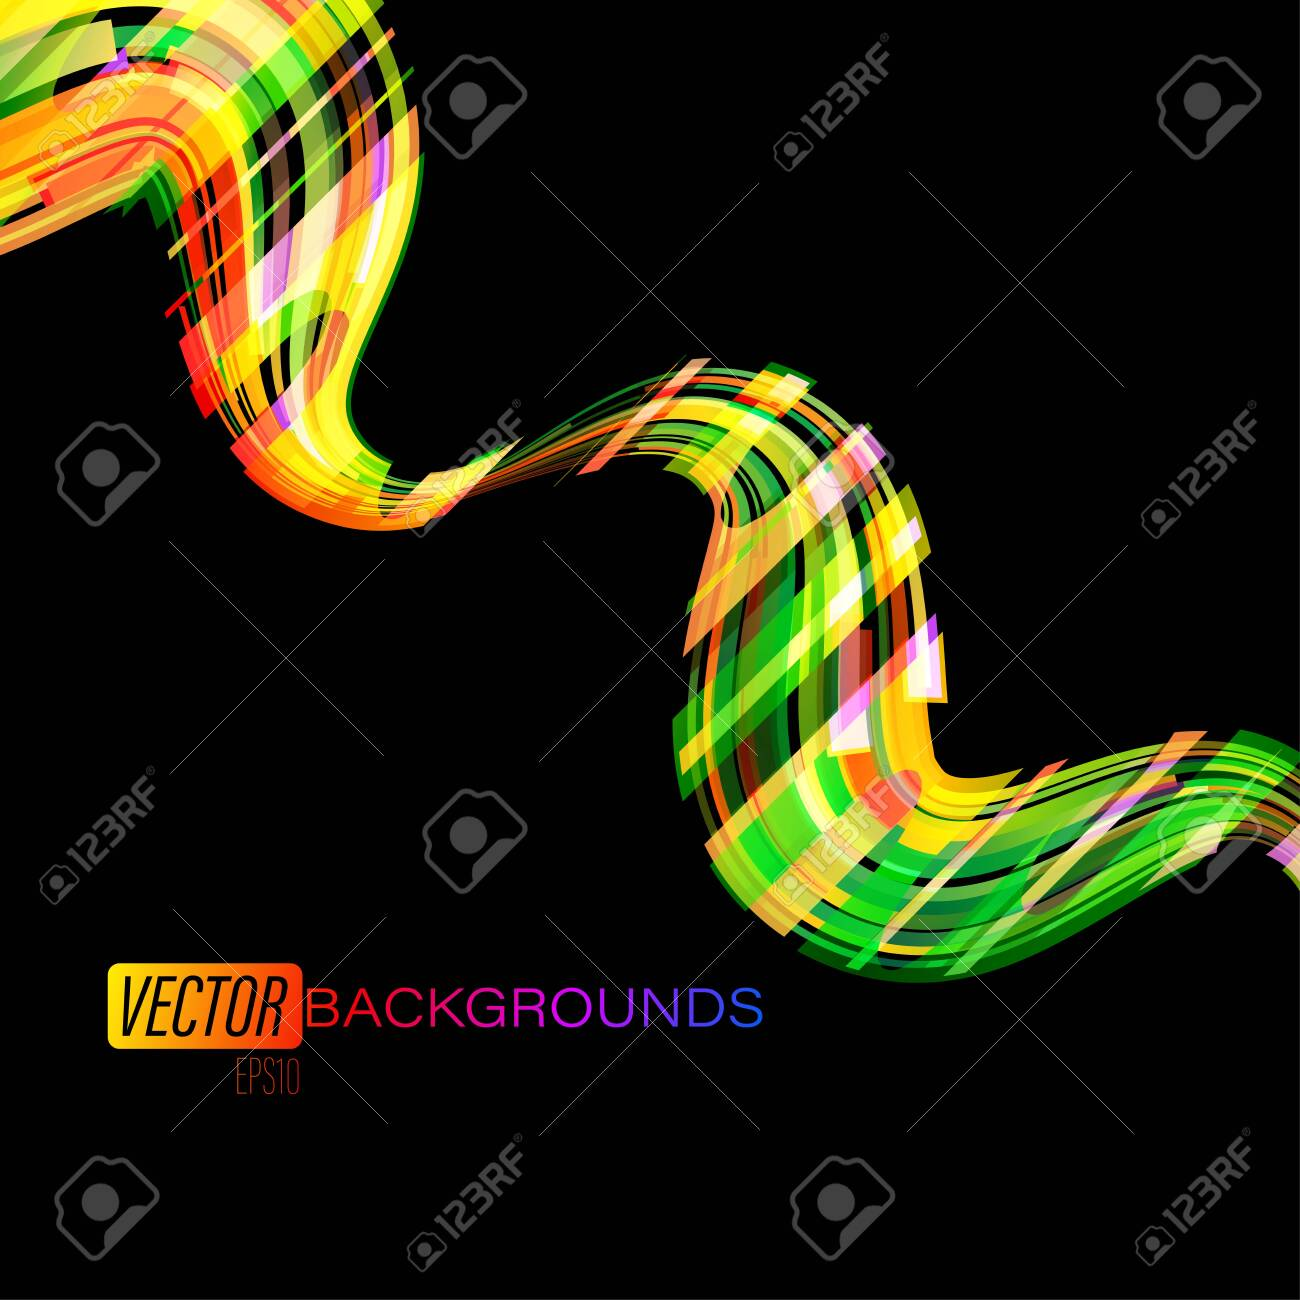 Colorful Shapes Motion Effects On A Black Vector Wallpaper Backgrounds